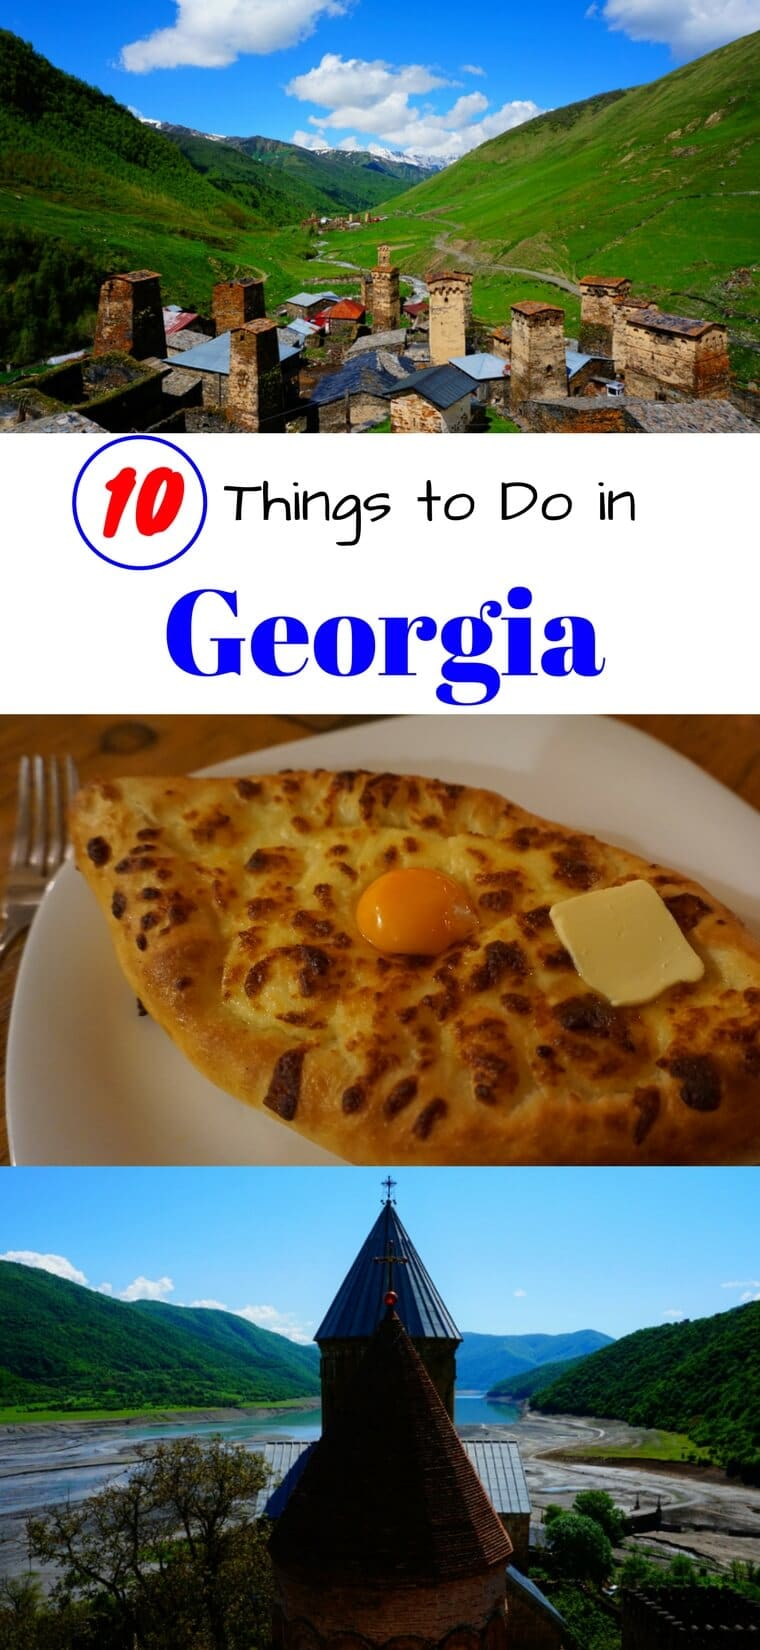 Don't miss these 10 incredible things to do in the country of Georgia (Europe). From visiting Old Town Tbilisi to hiking Kazbegi, we've got you covered with the top sights in Georgia. #georgia #travel